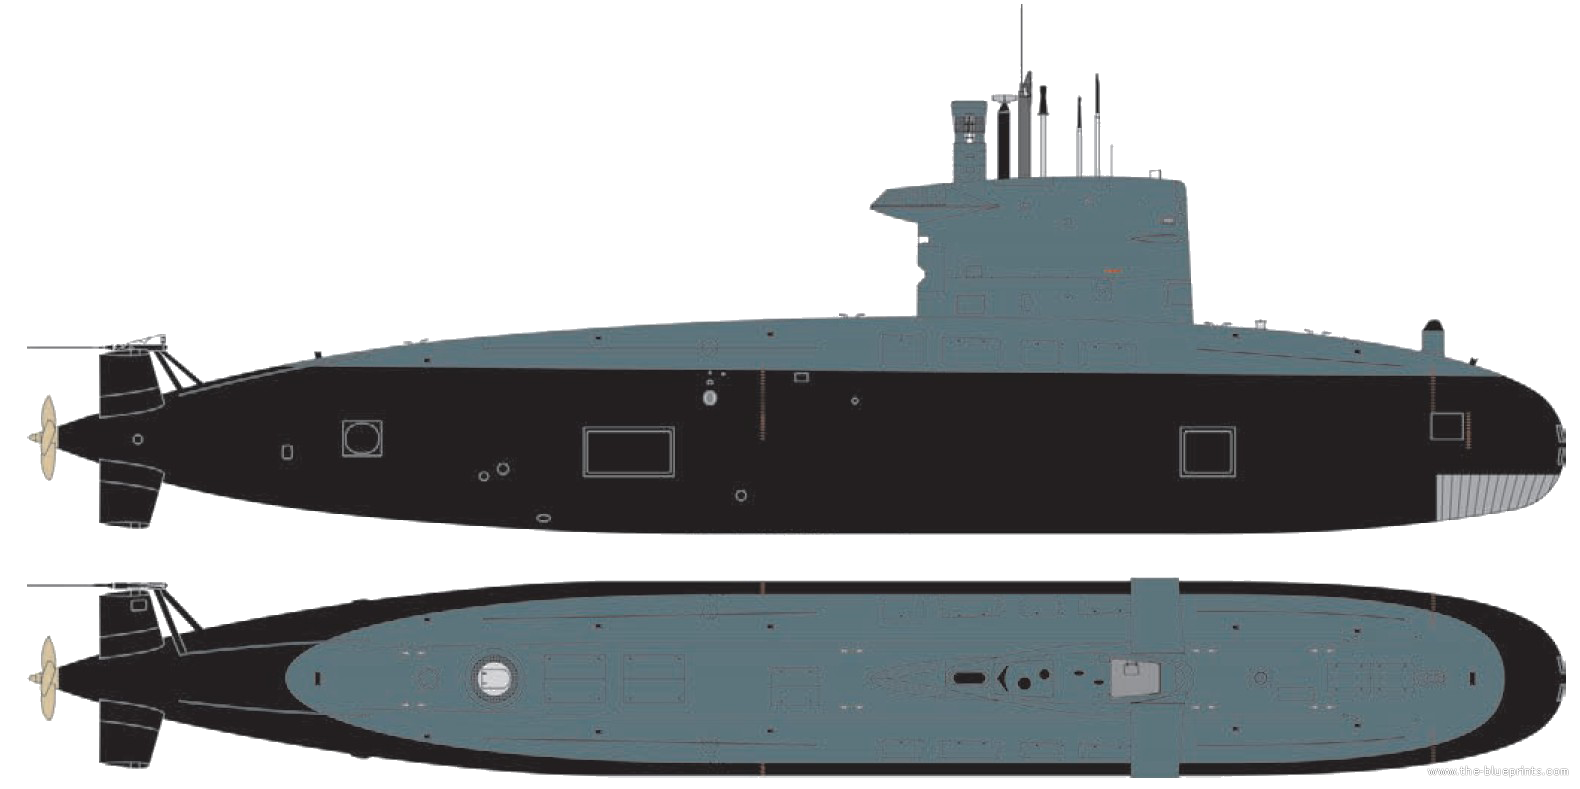 hight resolution of the walrus class hull above diagram from blueprints may be only slightly modified for a replacement submarine if there is some swedish design influence